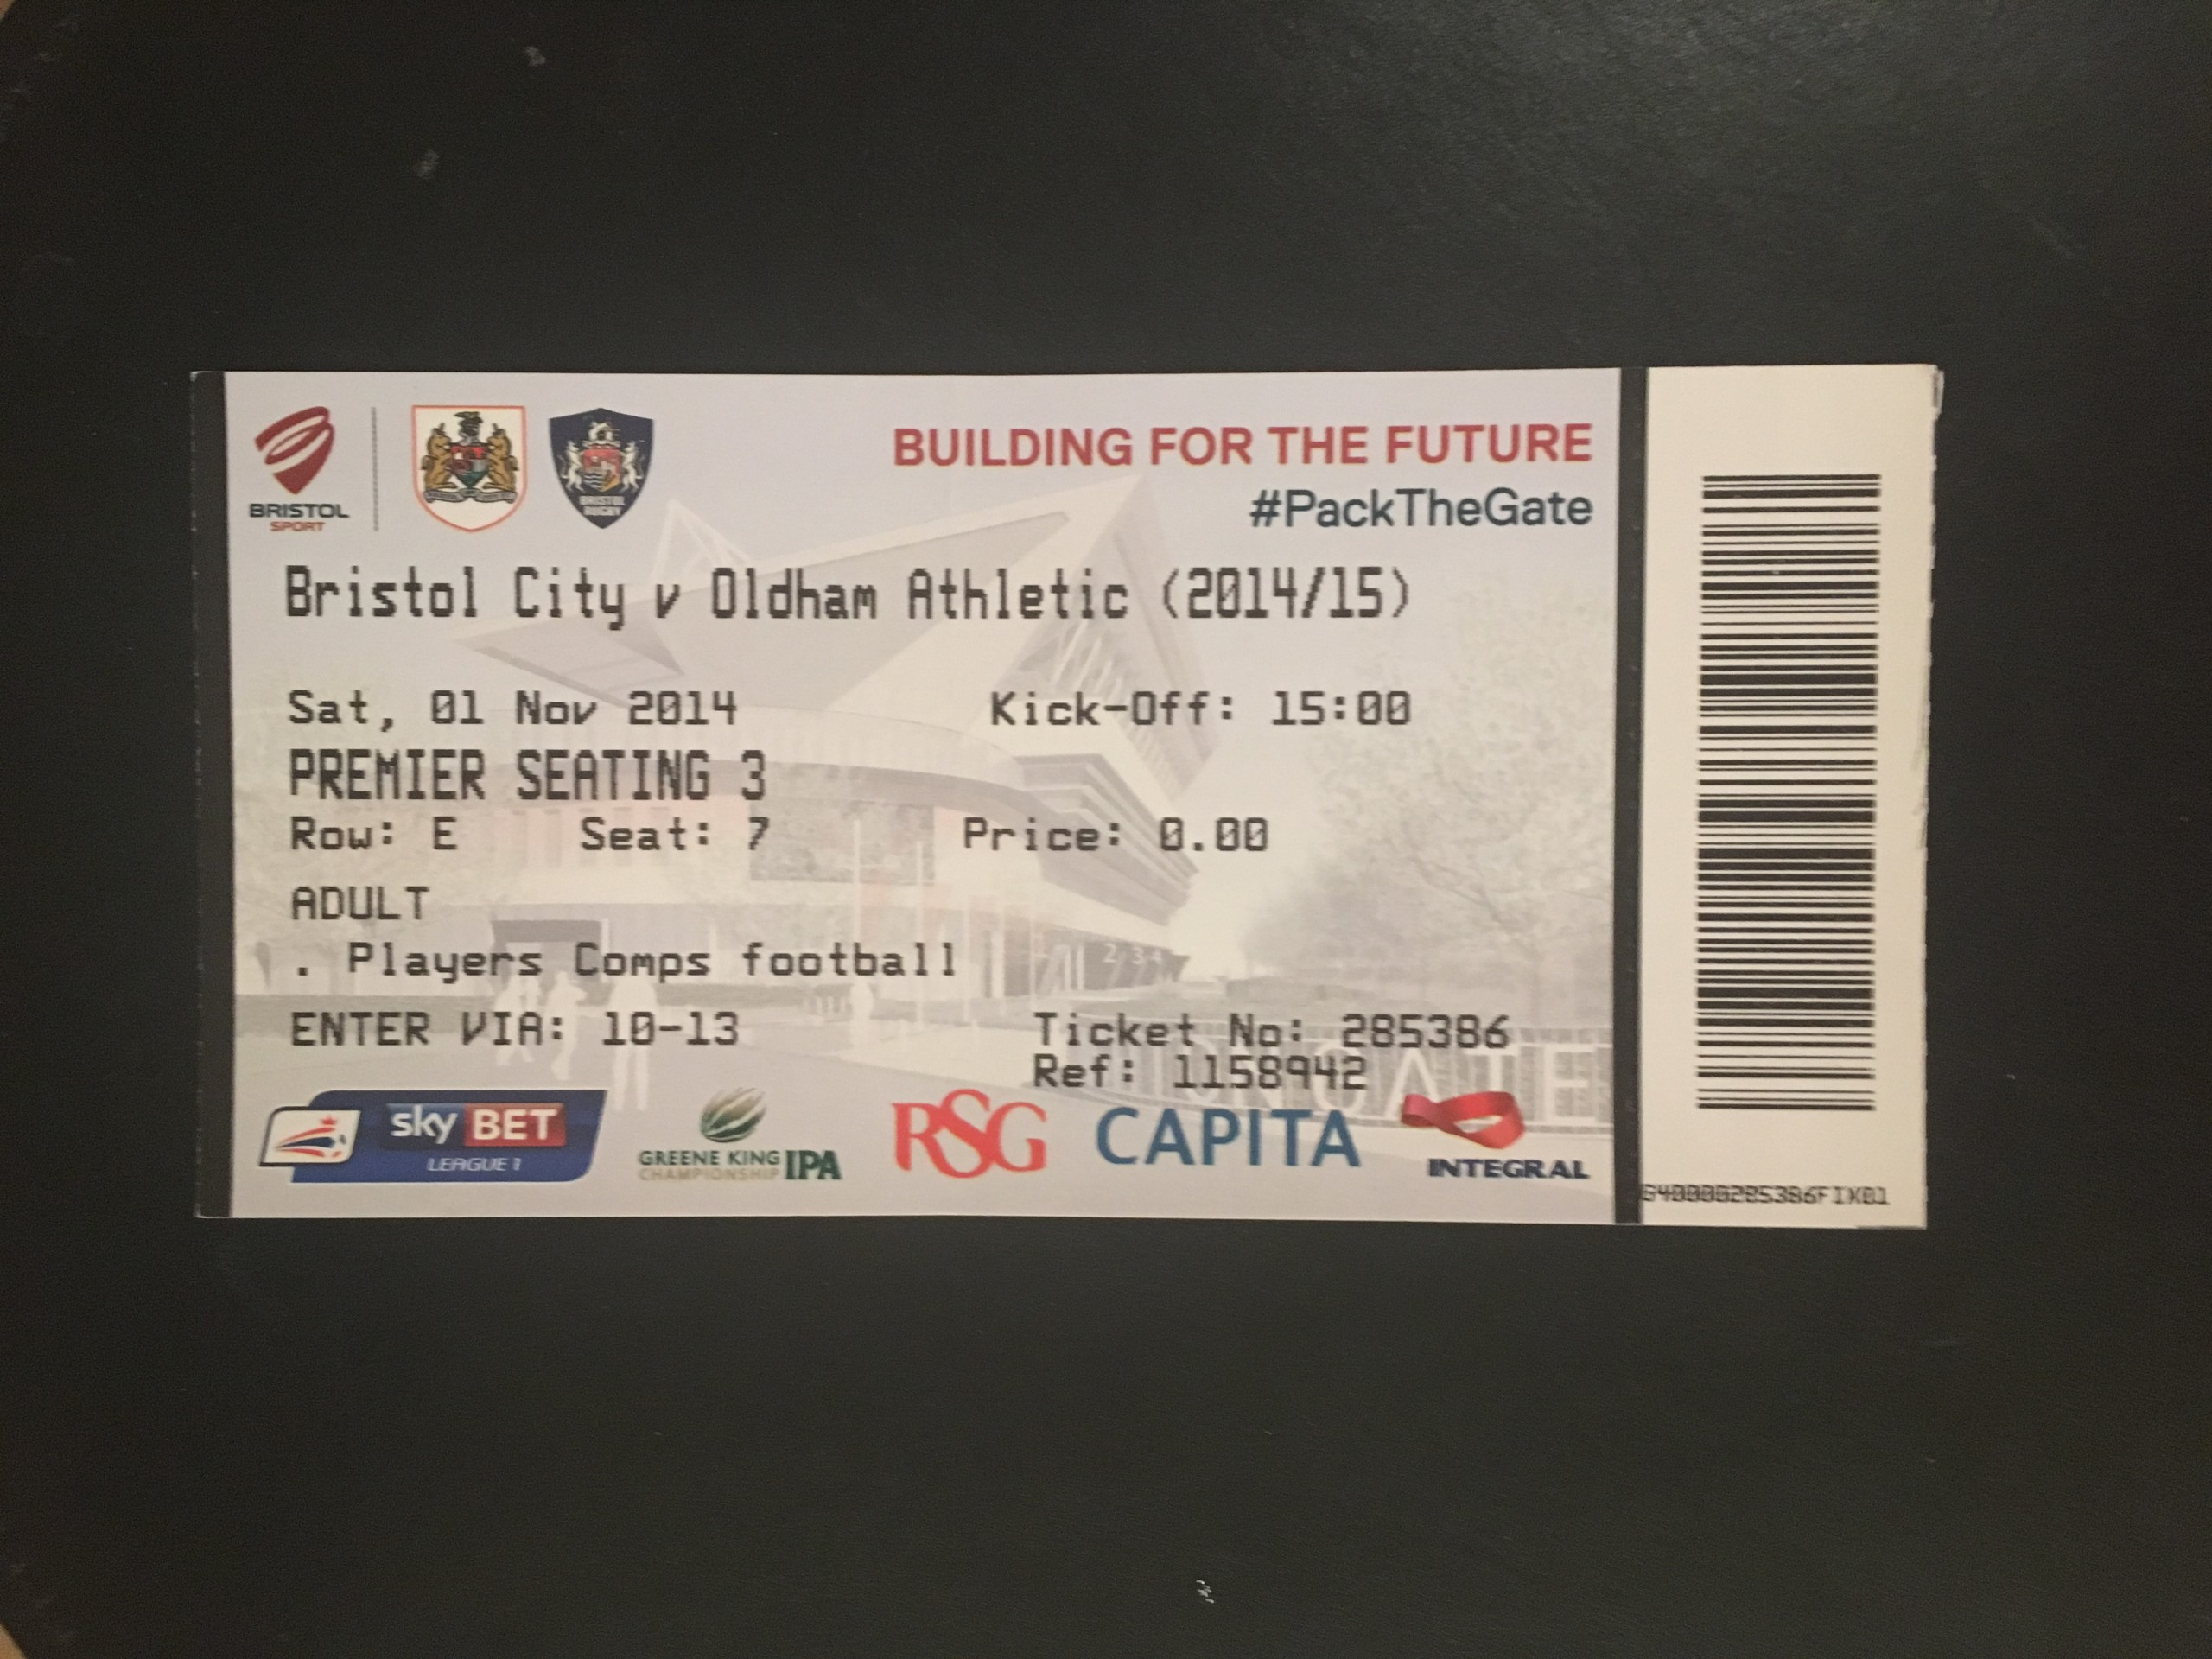 Bristol City v Oldham Athletic 01-11-2014 Ticket